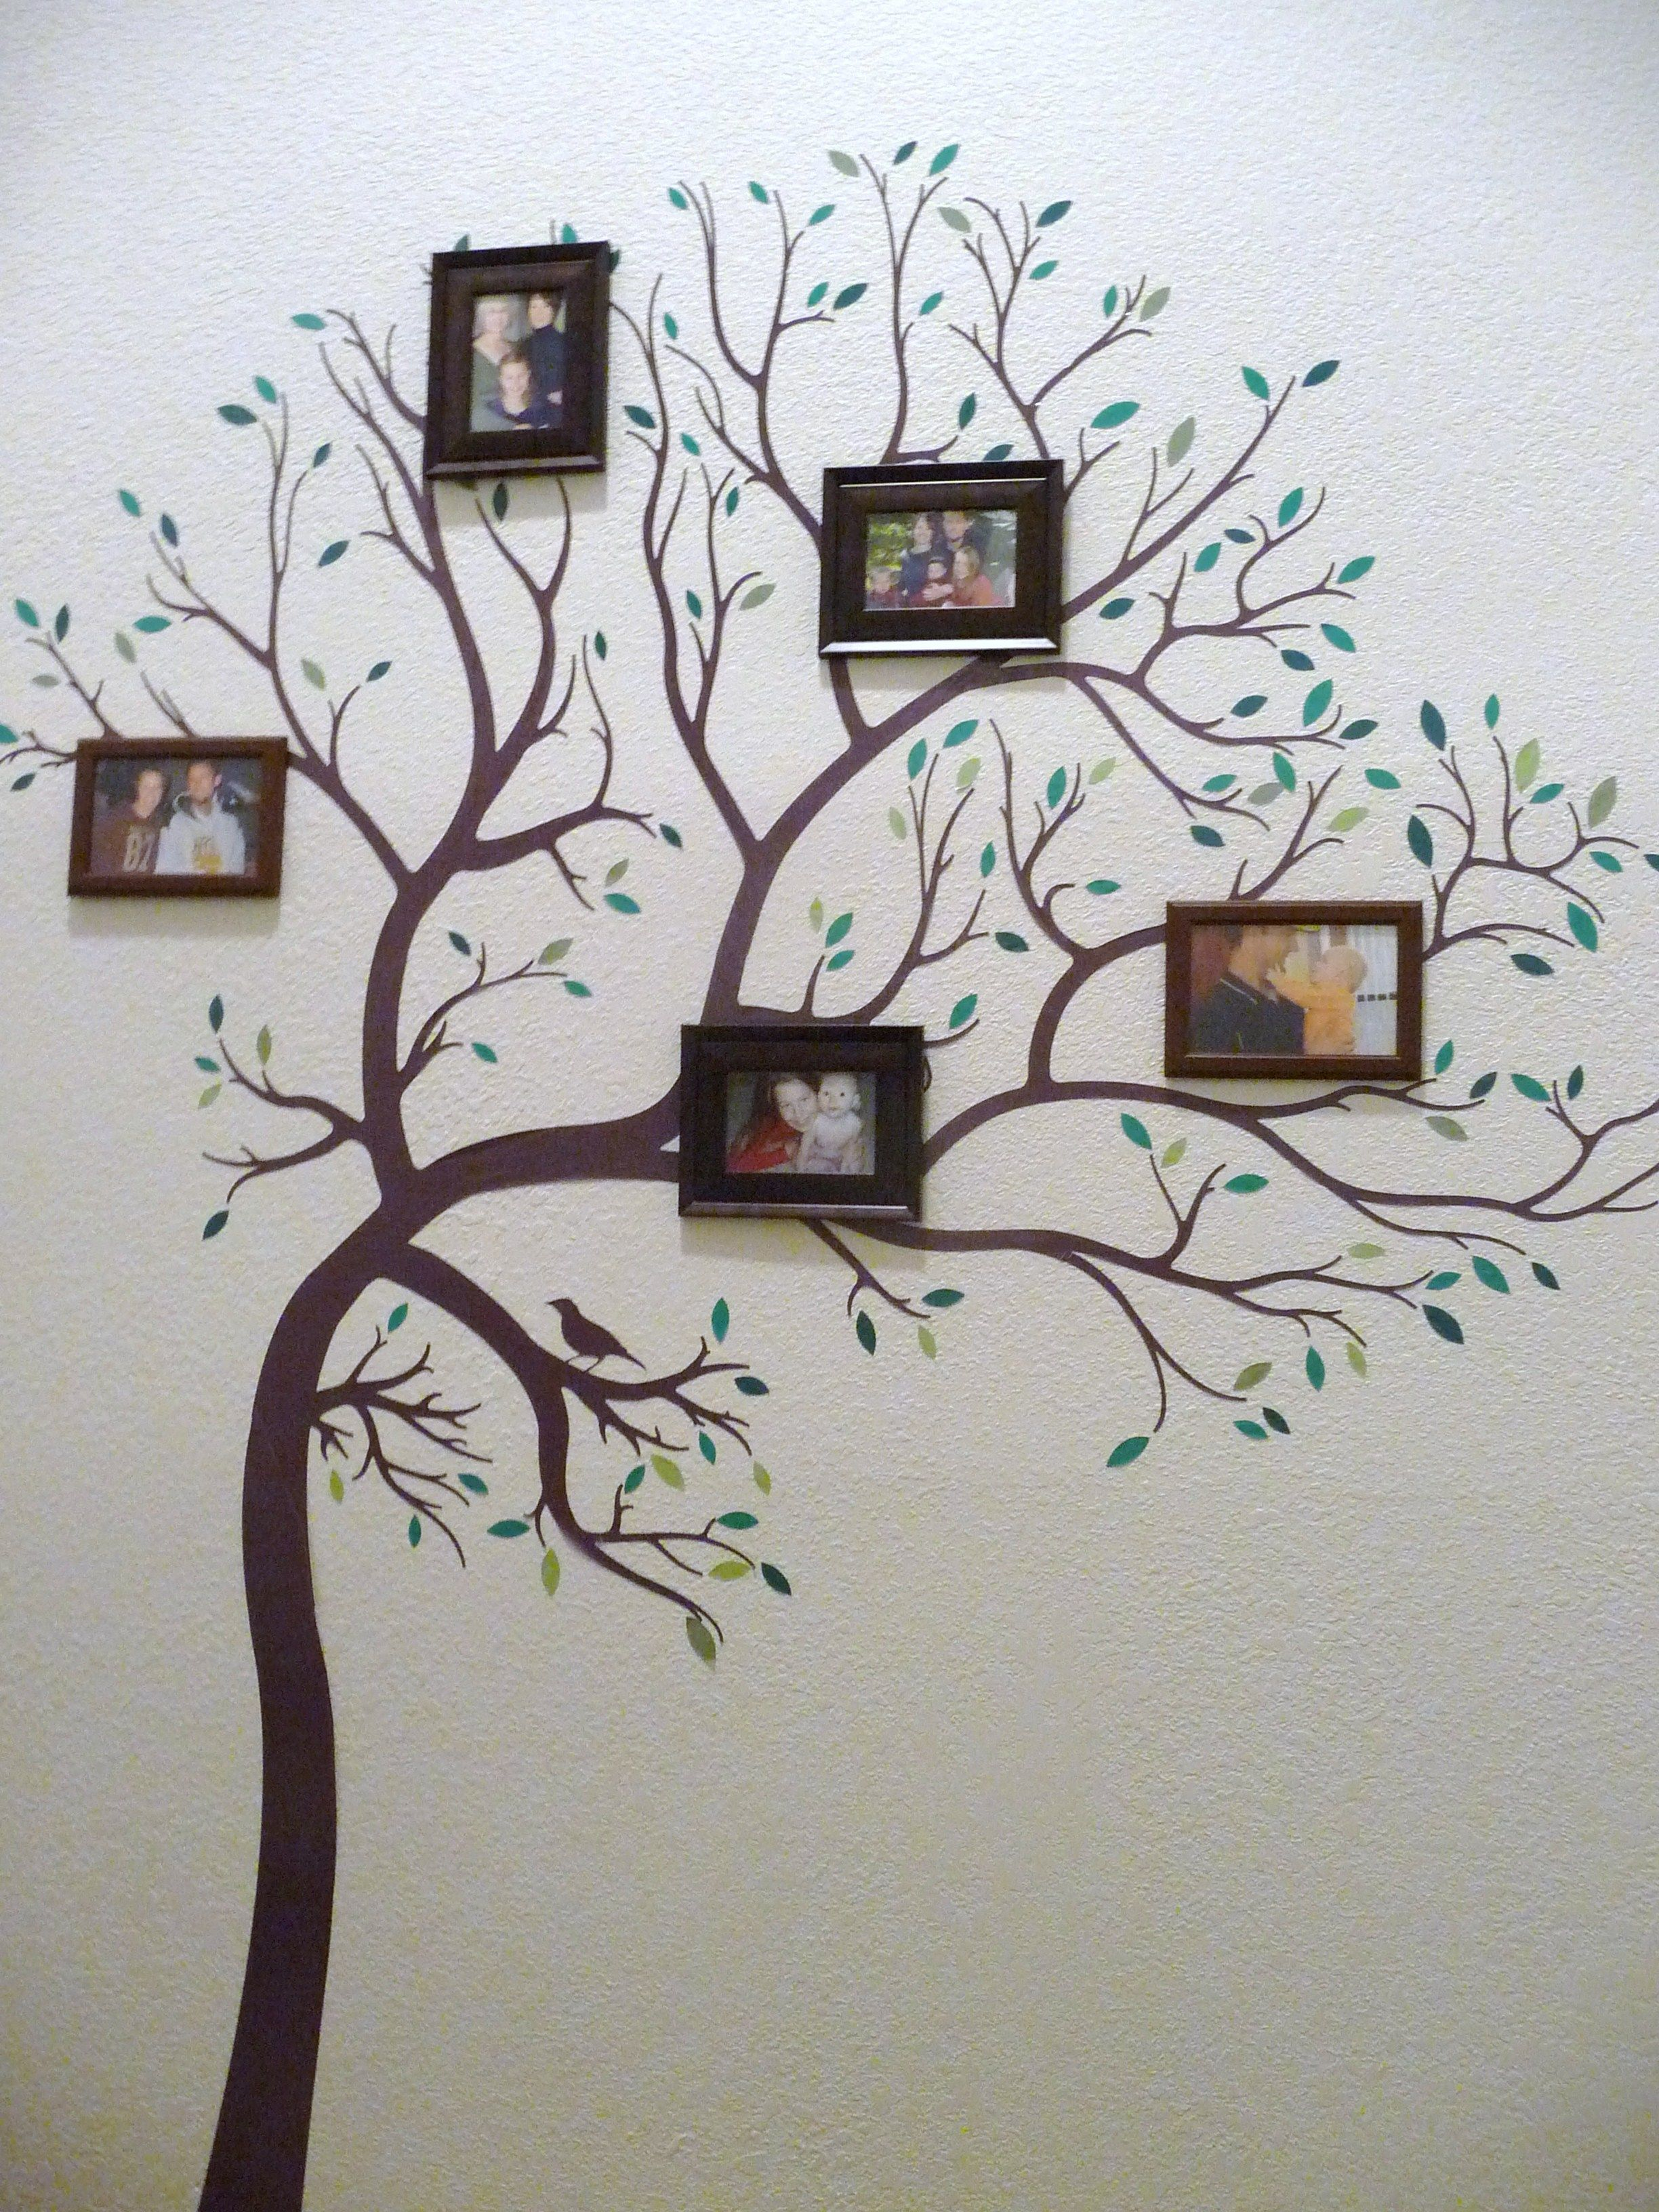 Added X Frames To A Vinyl Wallart Tree To Make Our Family Tree - How to make vinyl wall art with cricut